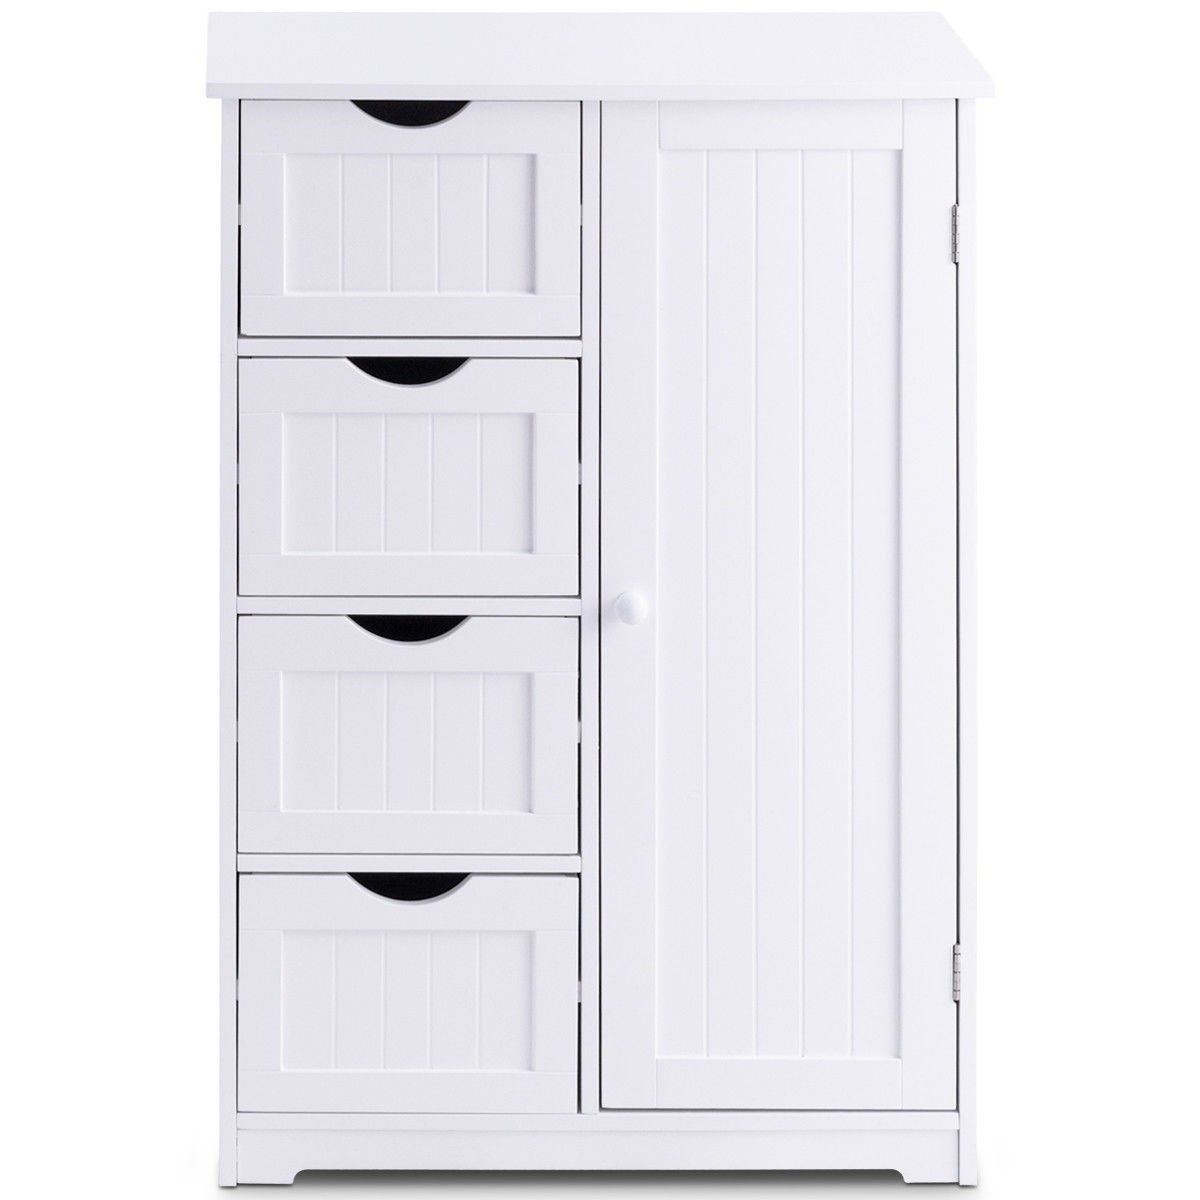 Standing Indoor Wooden Cabinet With 4 Drawers Color White Material Mdf Board Assembled Size 22 Cupboard Storage Bathroom Storage Stand Ikea Storage Cabinets